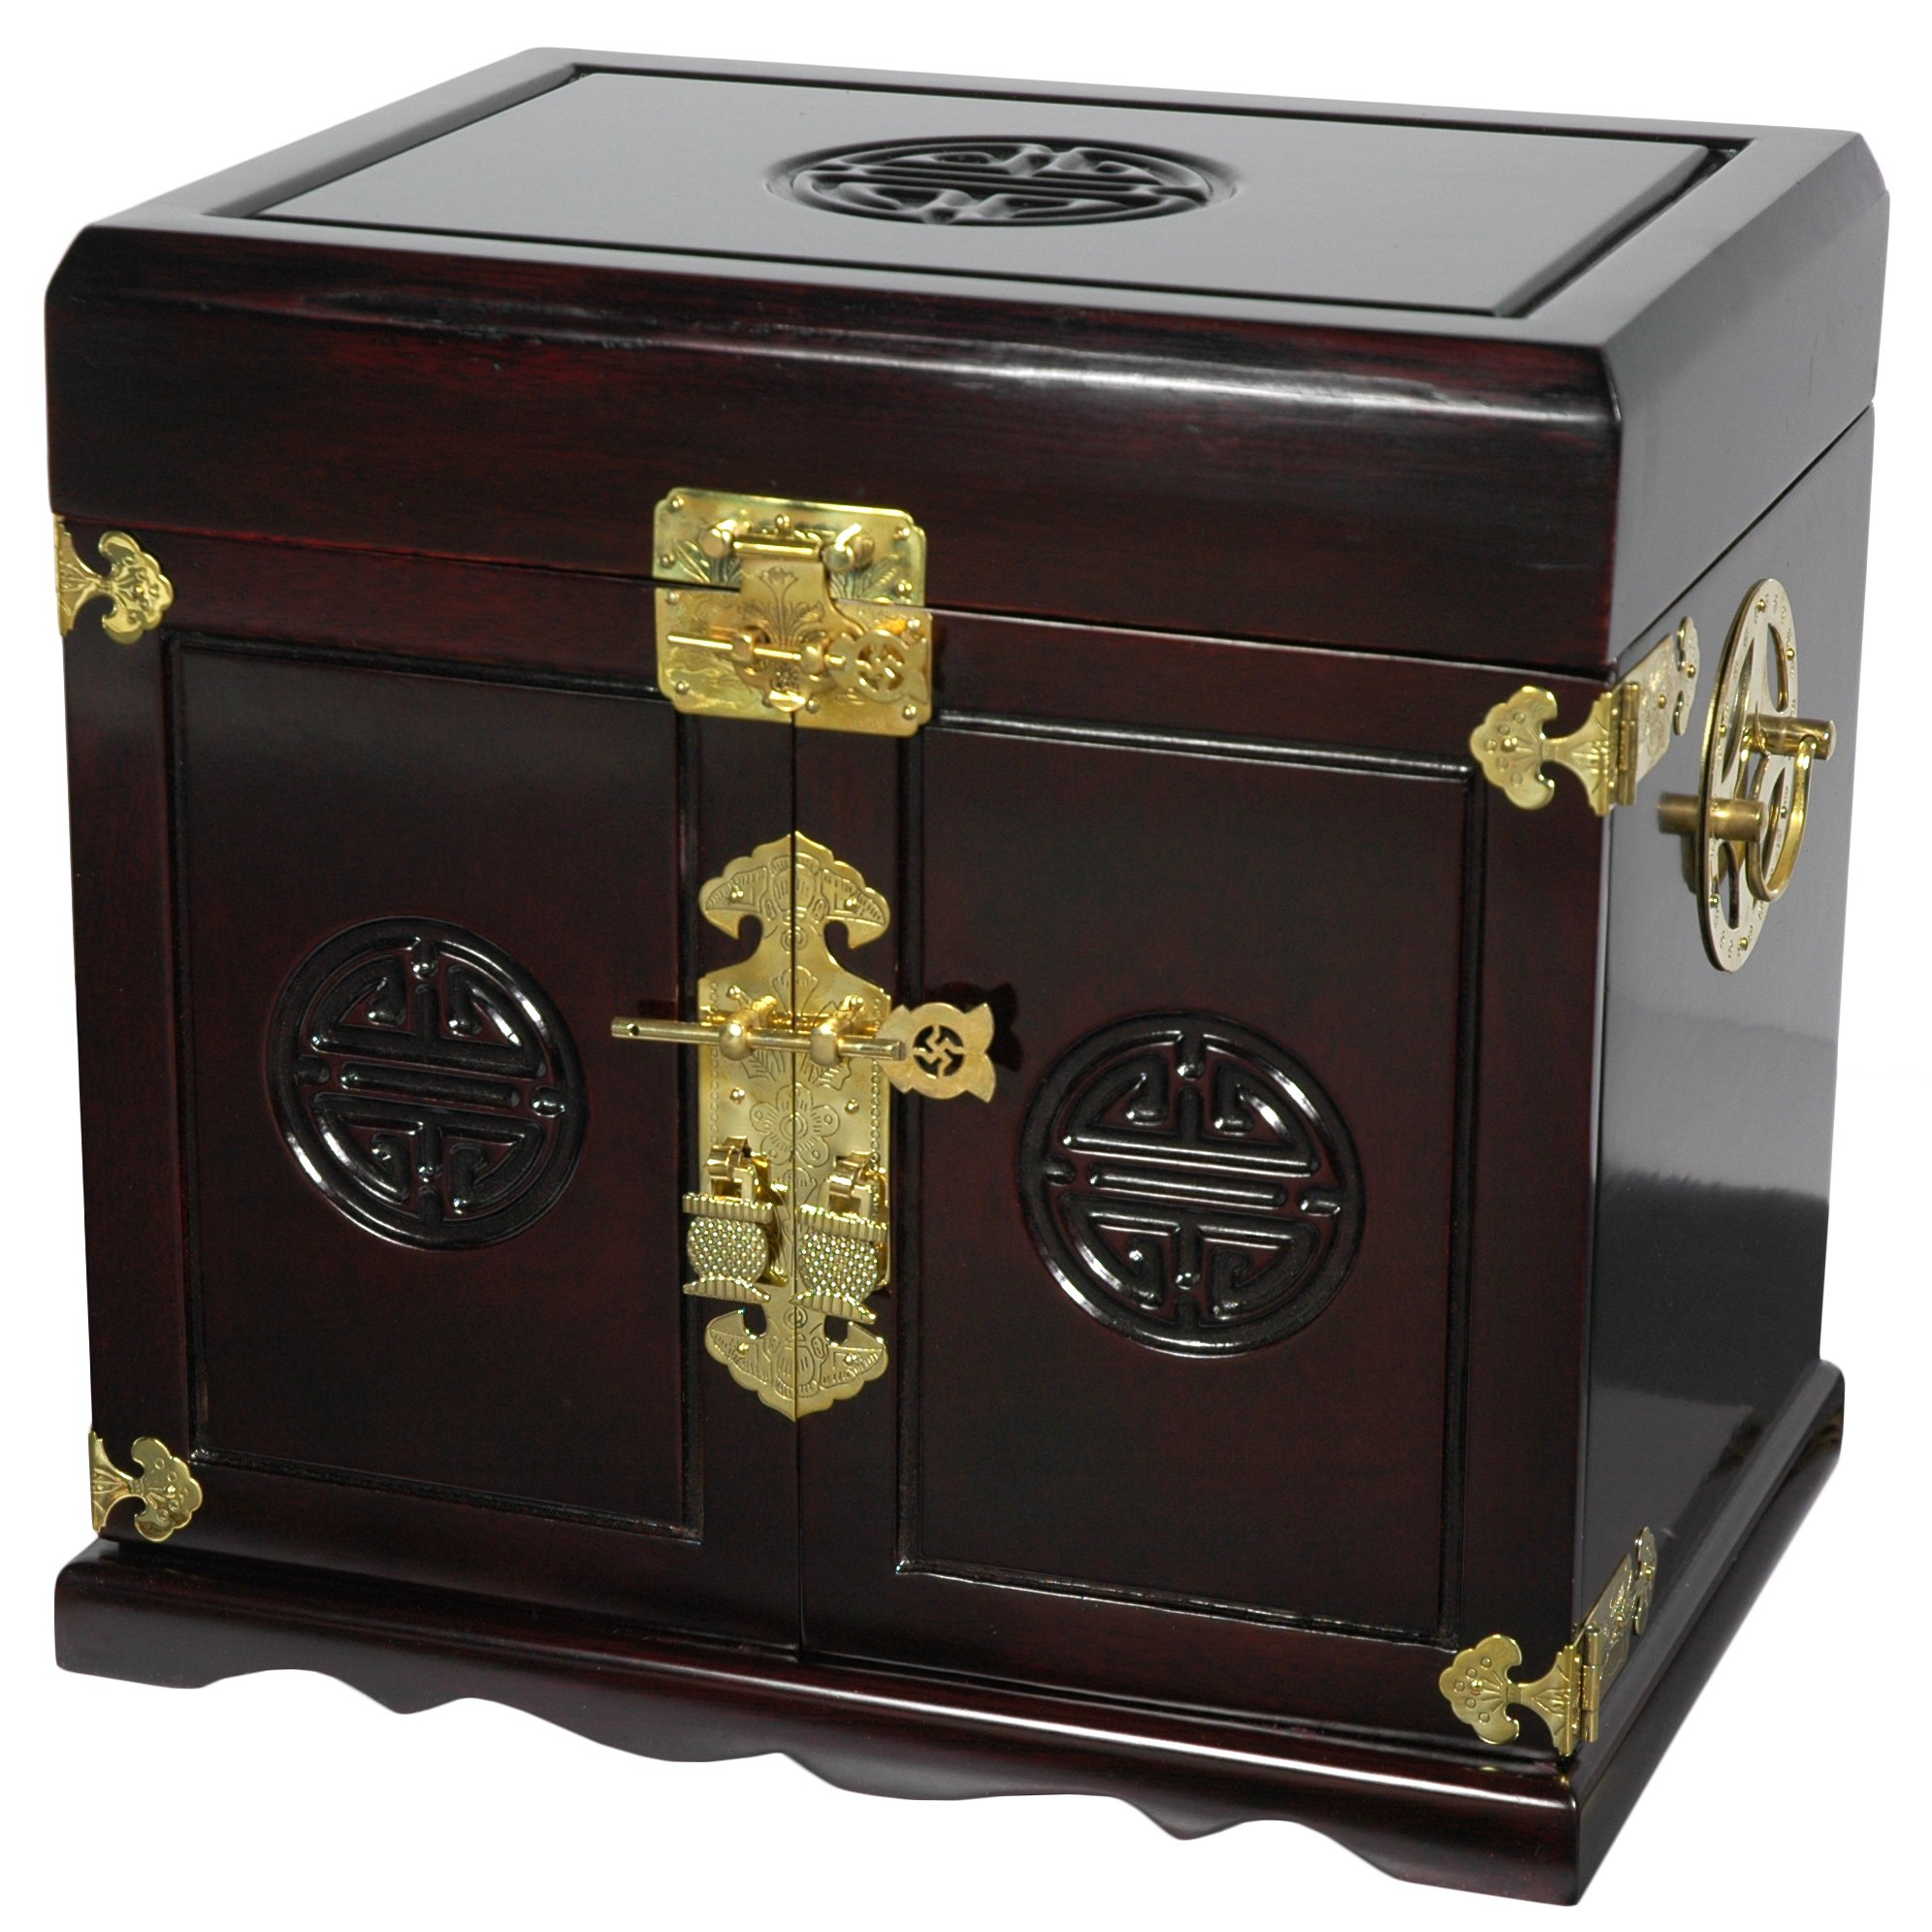 Oriental Furniture Rosewood Jewelry Cabinet with 5 Drawers - Dark Rosewood